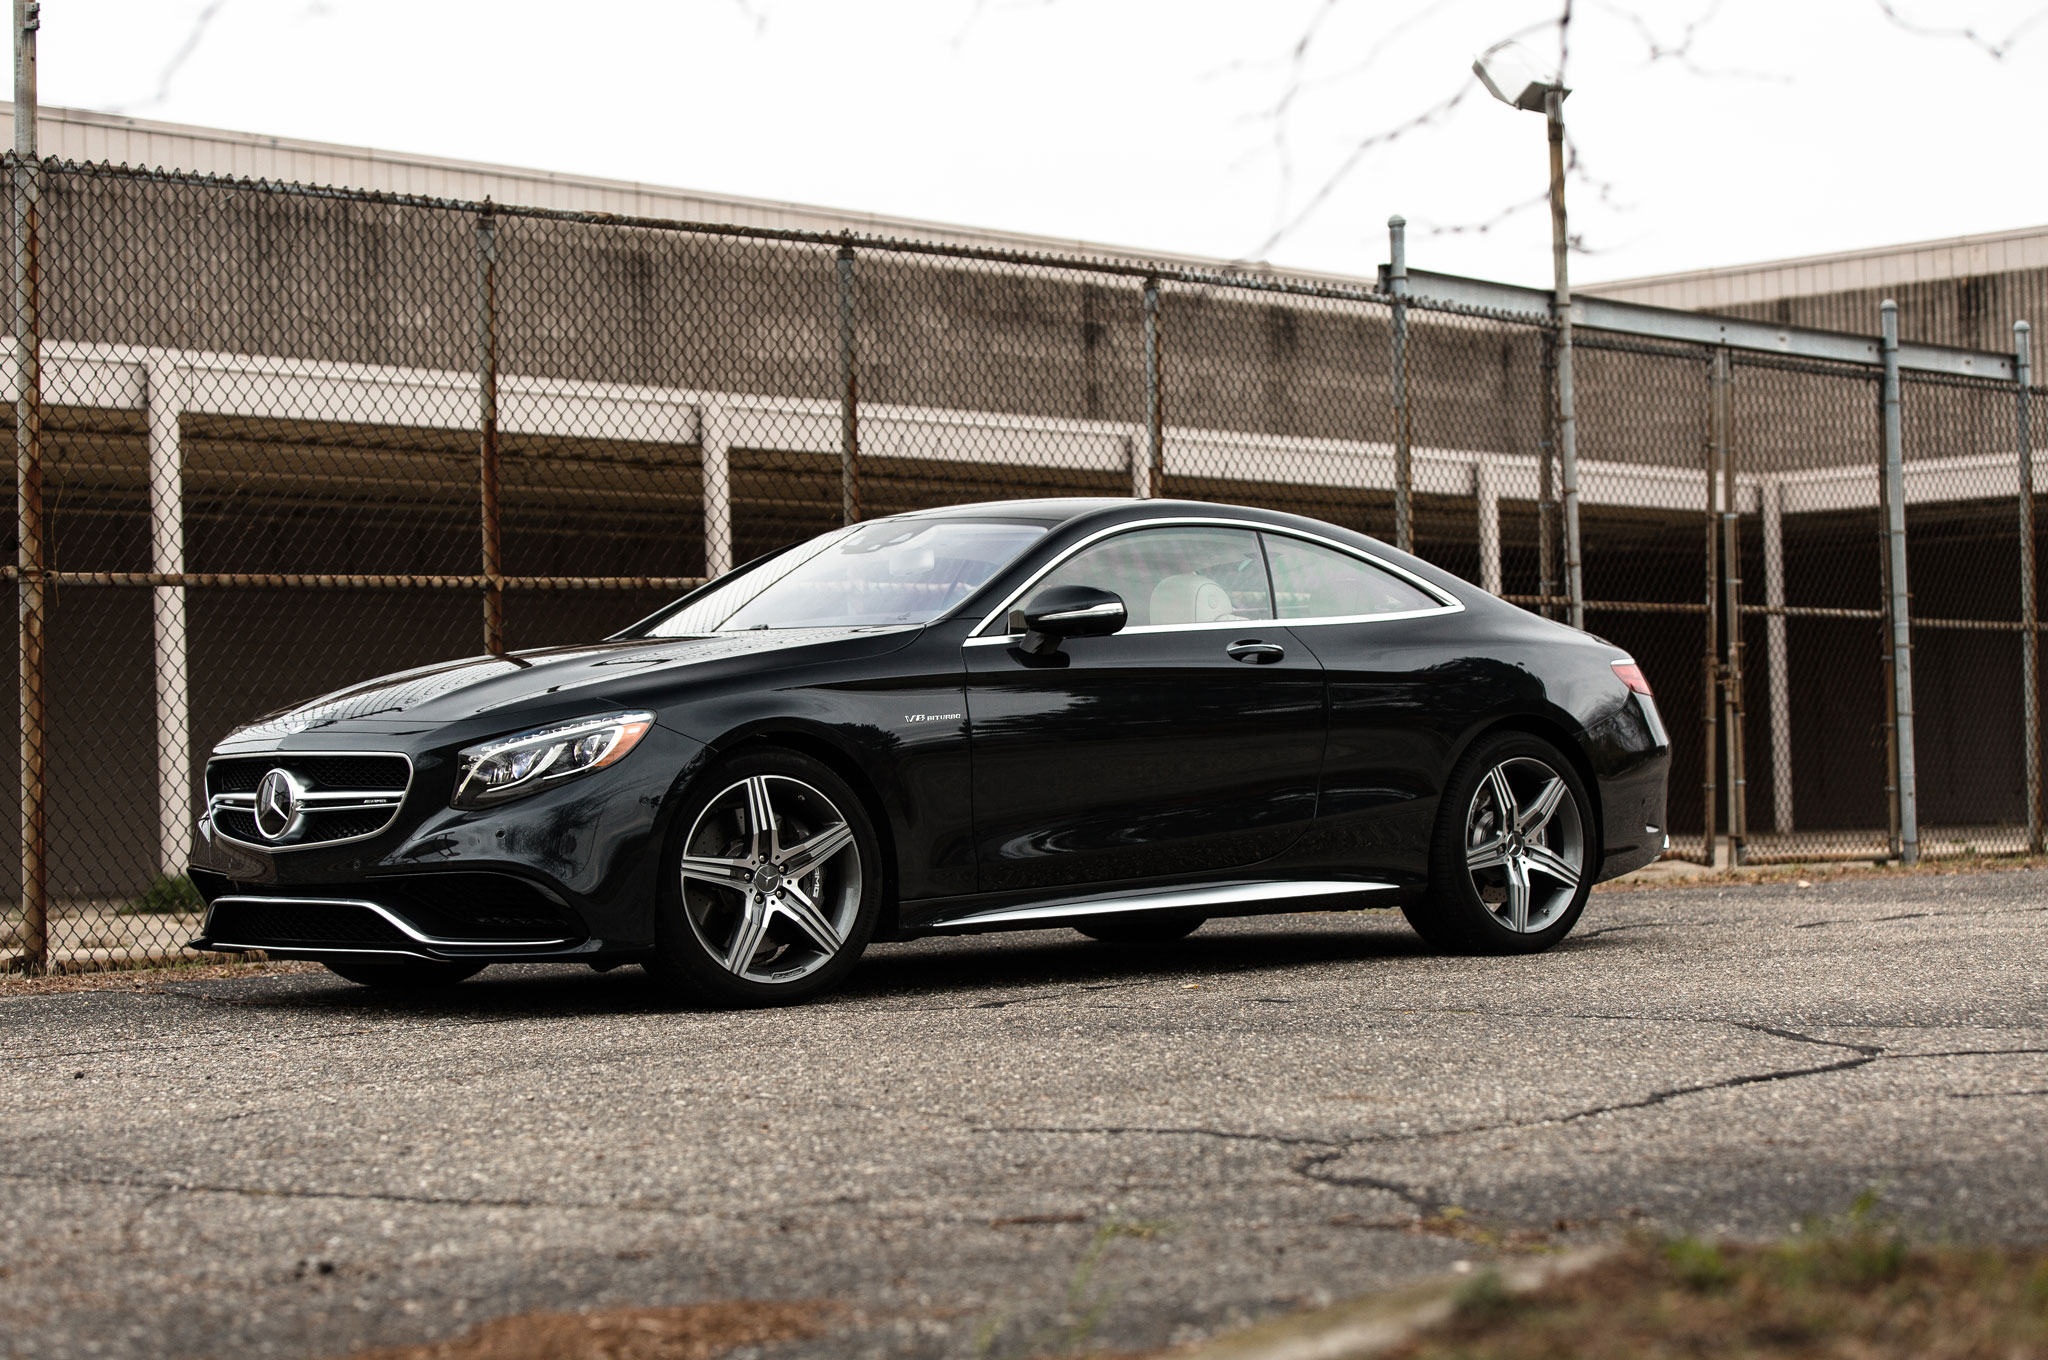 http://st.automobilemag.com/uploads/sites/11/2014/12/2015-Mercedes-Benz-S63-AMG-4Matic-Coupe-front-driver-profile.jpg